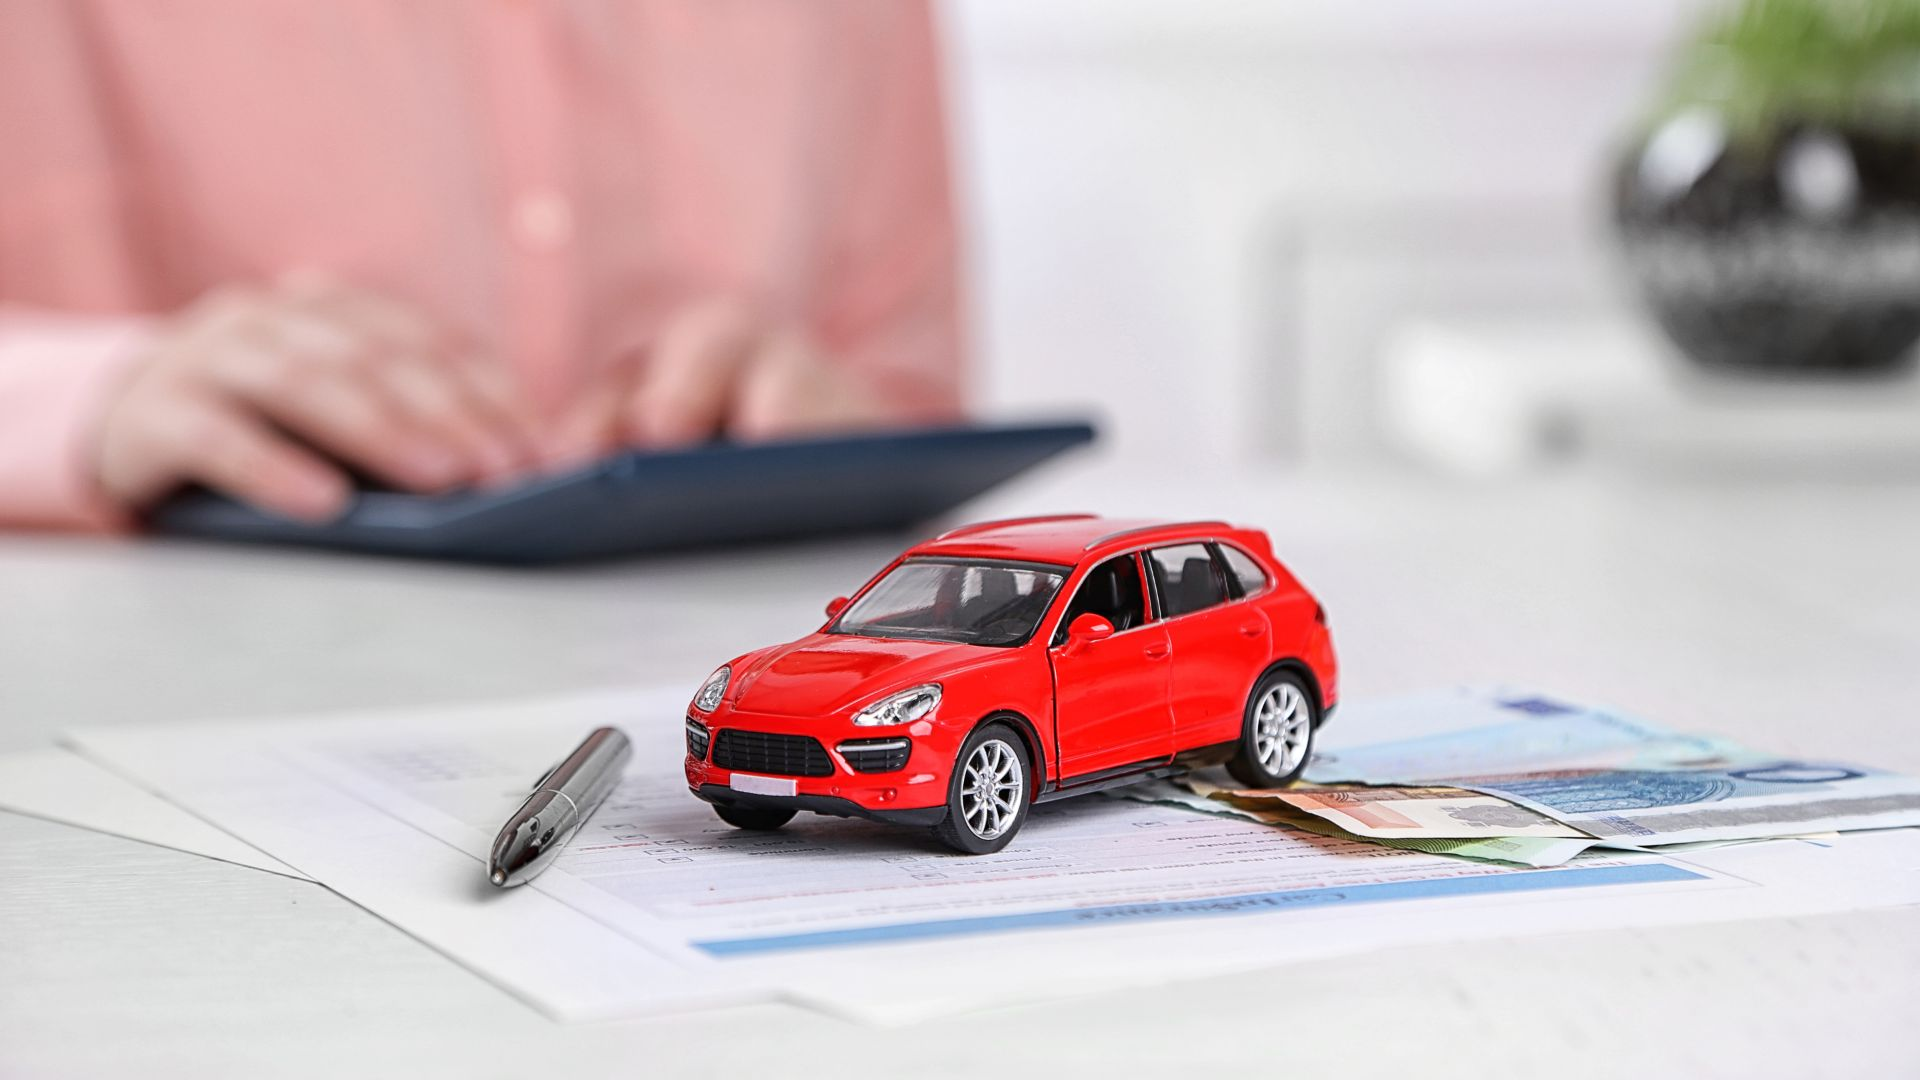 Largest Quarterly Drop for UK Car Insurance Premiums Since 2018